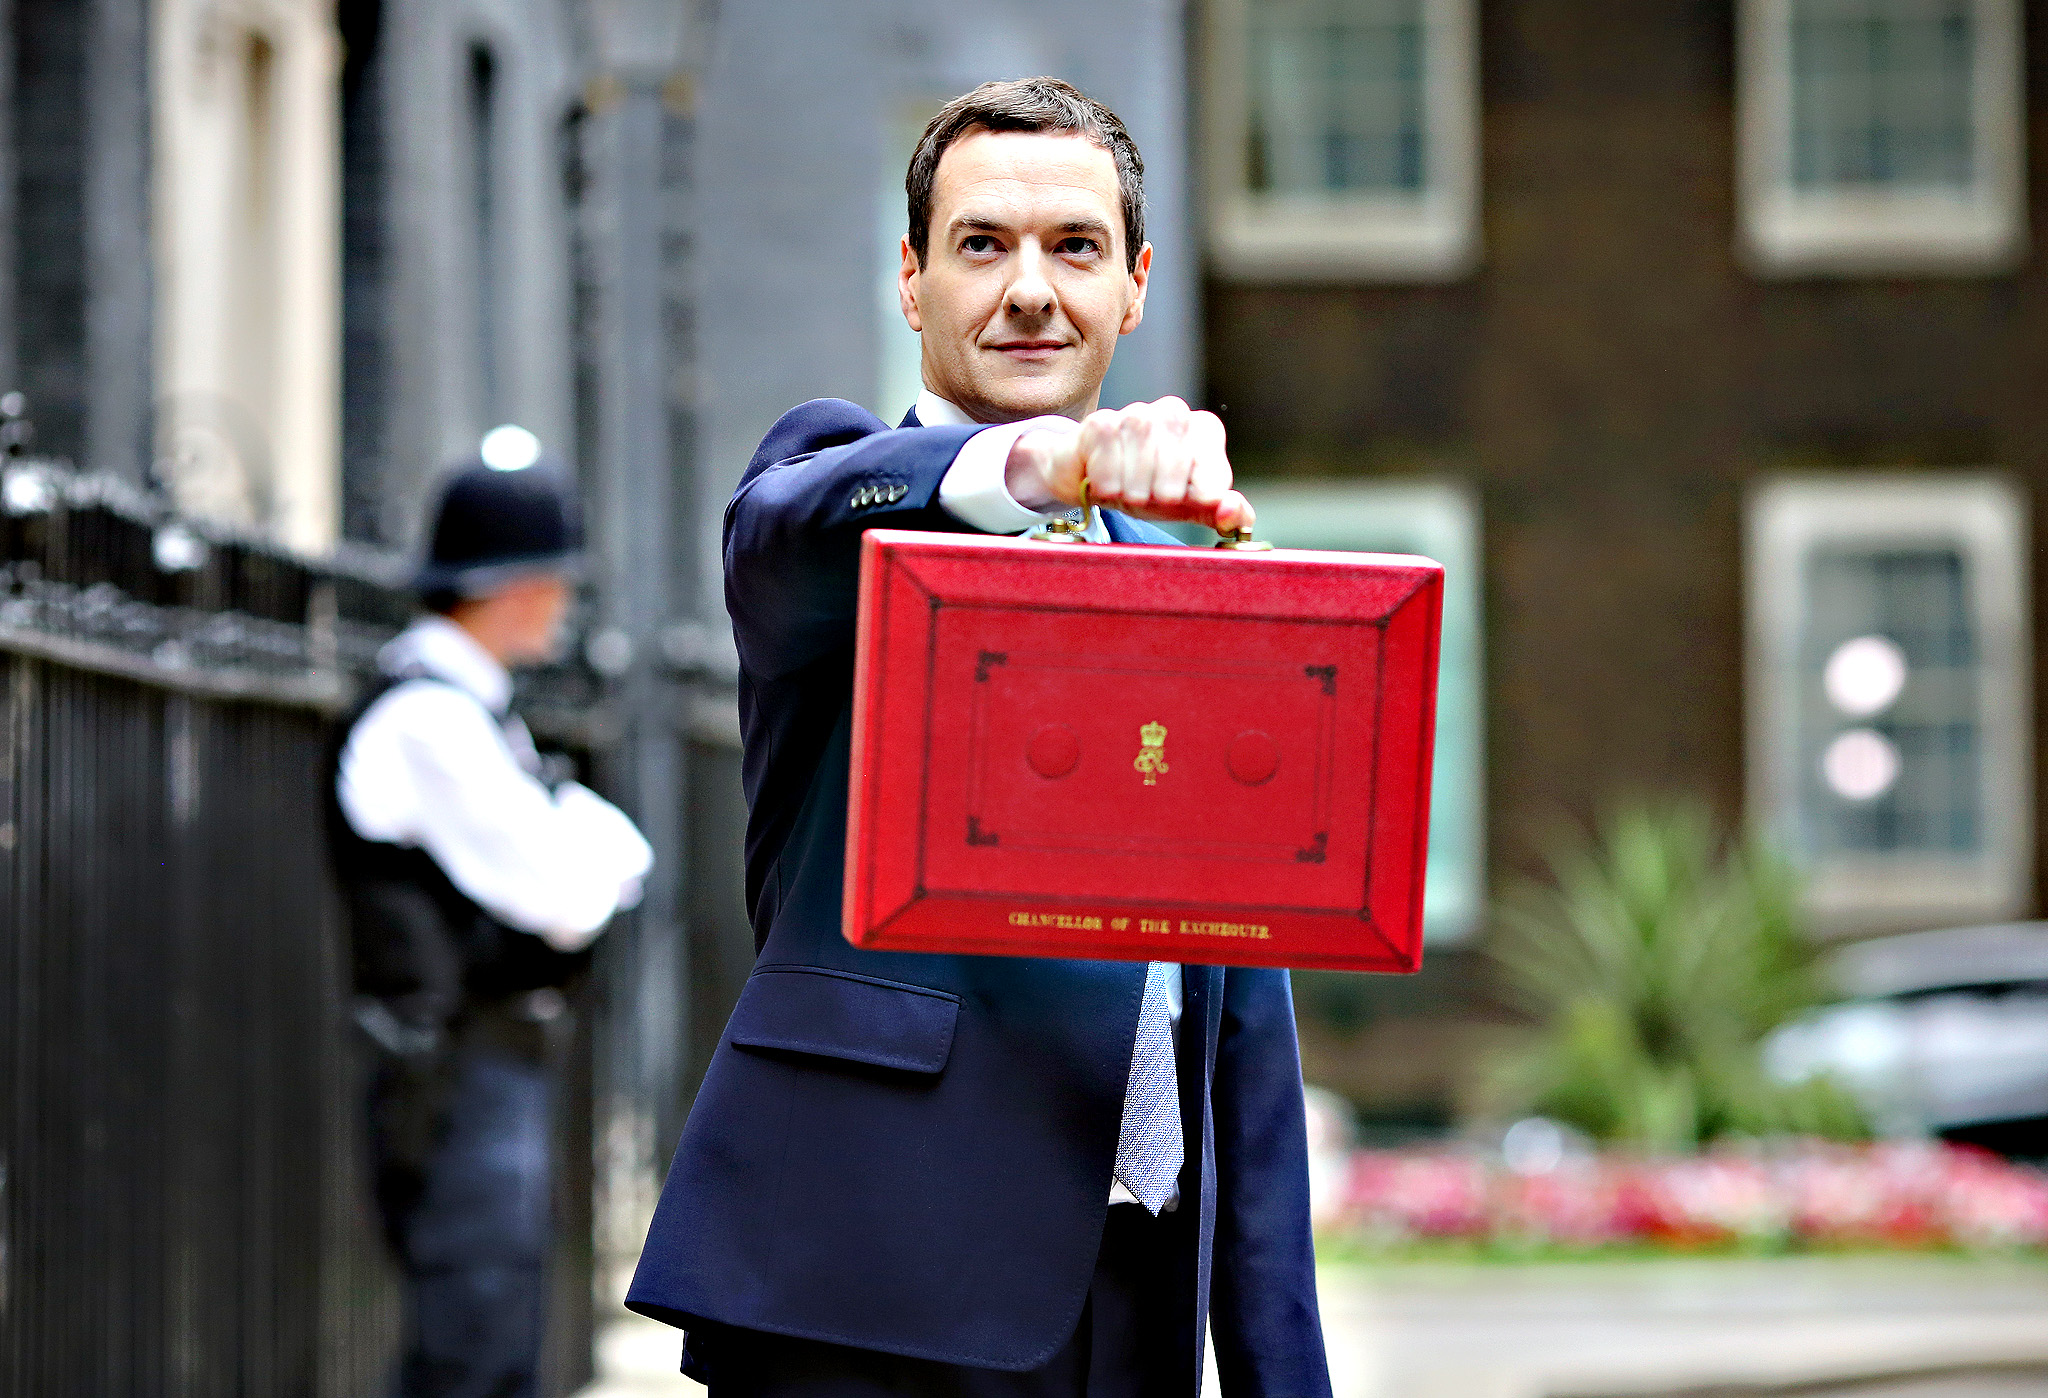 Chancellor, George Osborne, leaves Downing street to deliver the Budget on Wednesday. The first Budget after the Conservative party won the General Election in May B